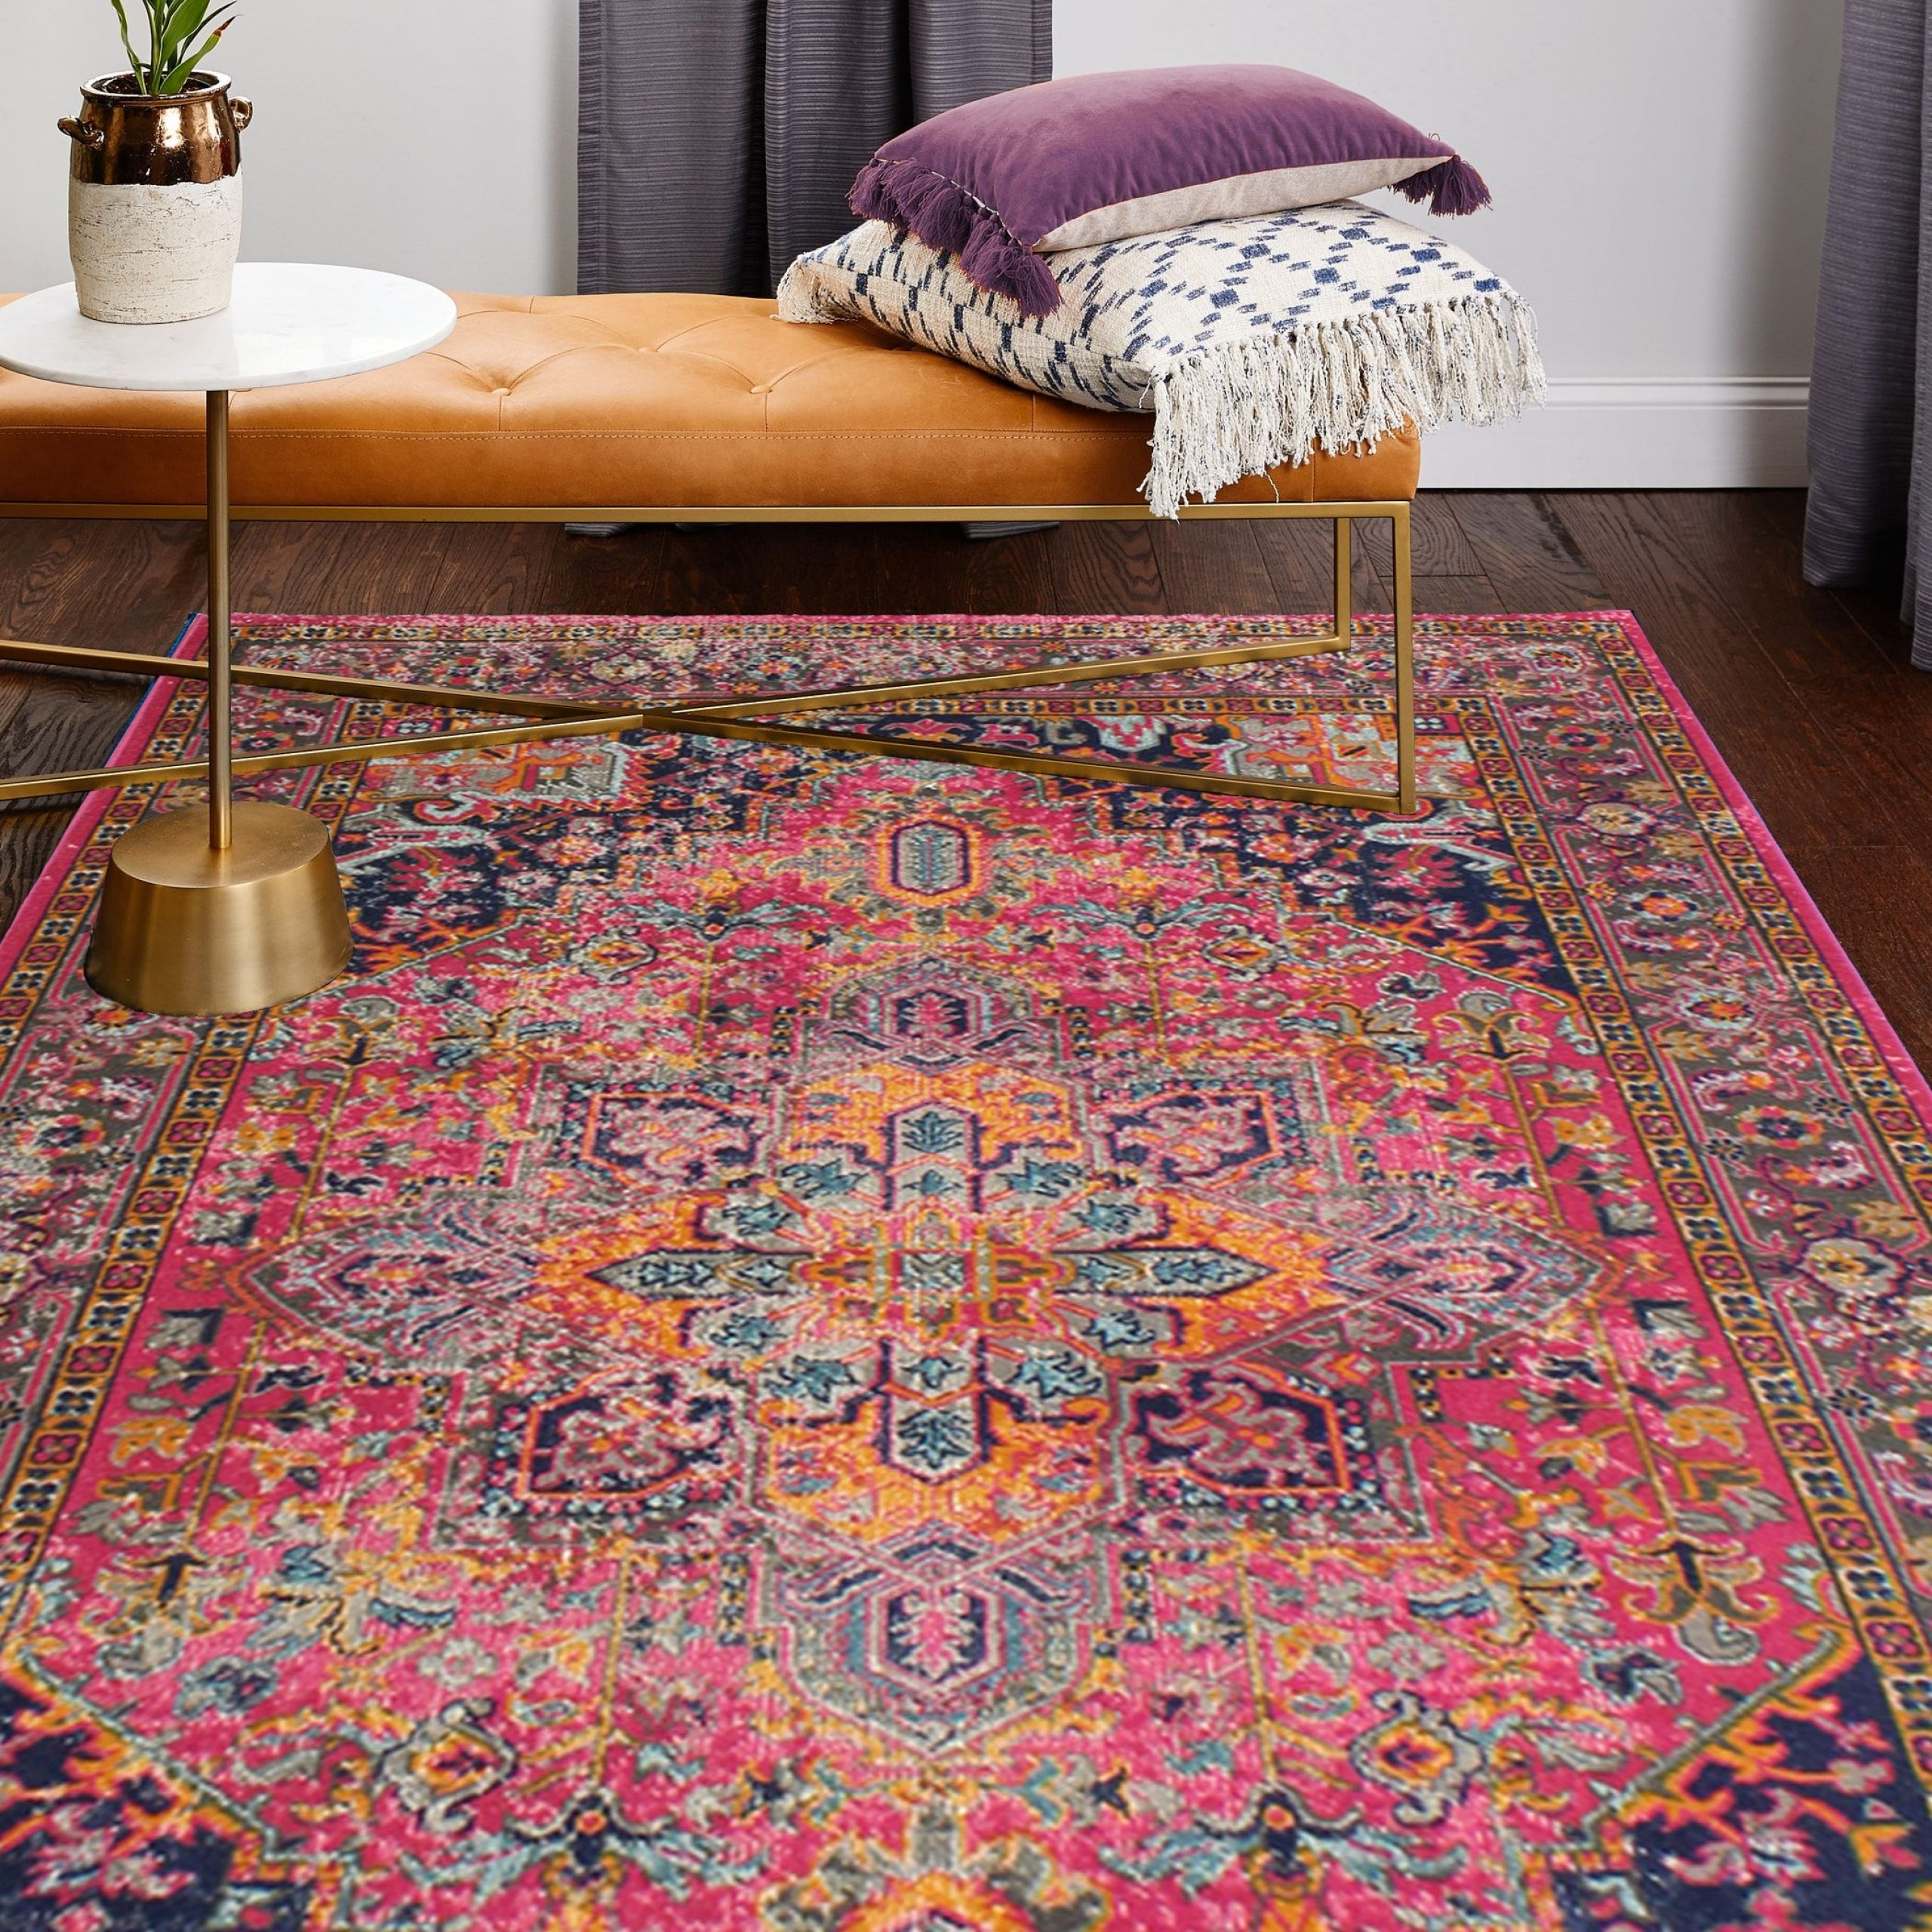 Stunning Home Decor Ideas Living Room Modern Boho area Rug with Plum Accents On Appealing Bright Boho Persian Rug Hot Pink orange Navy Blue On Home Decor Ideas Living Room Modern Boho area Rug with Plum Accents